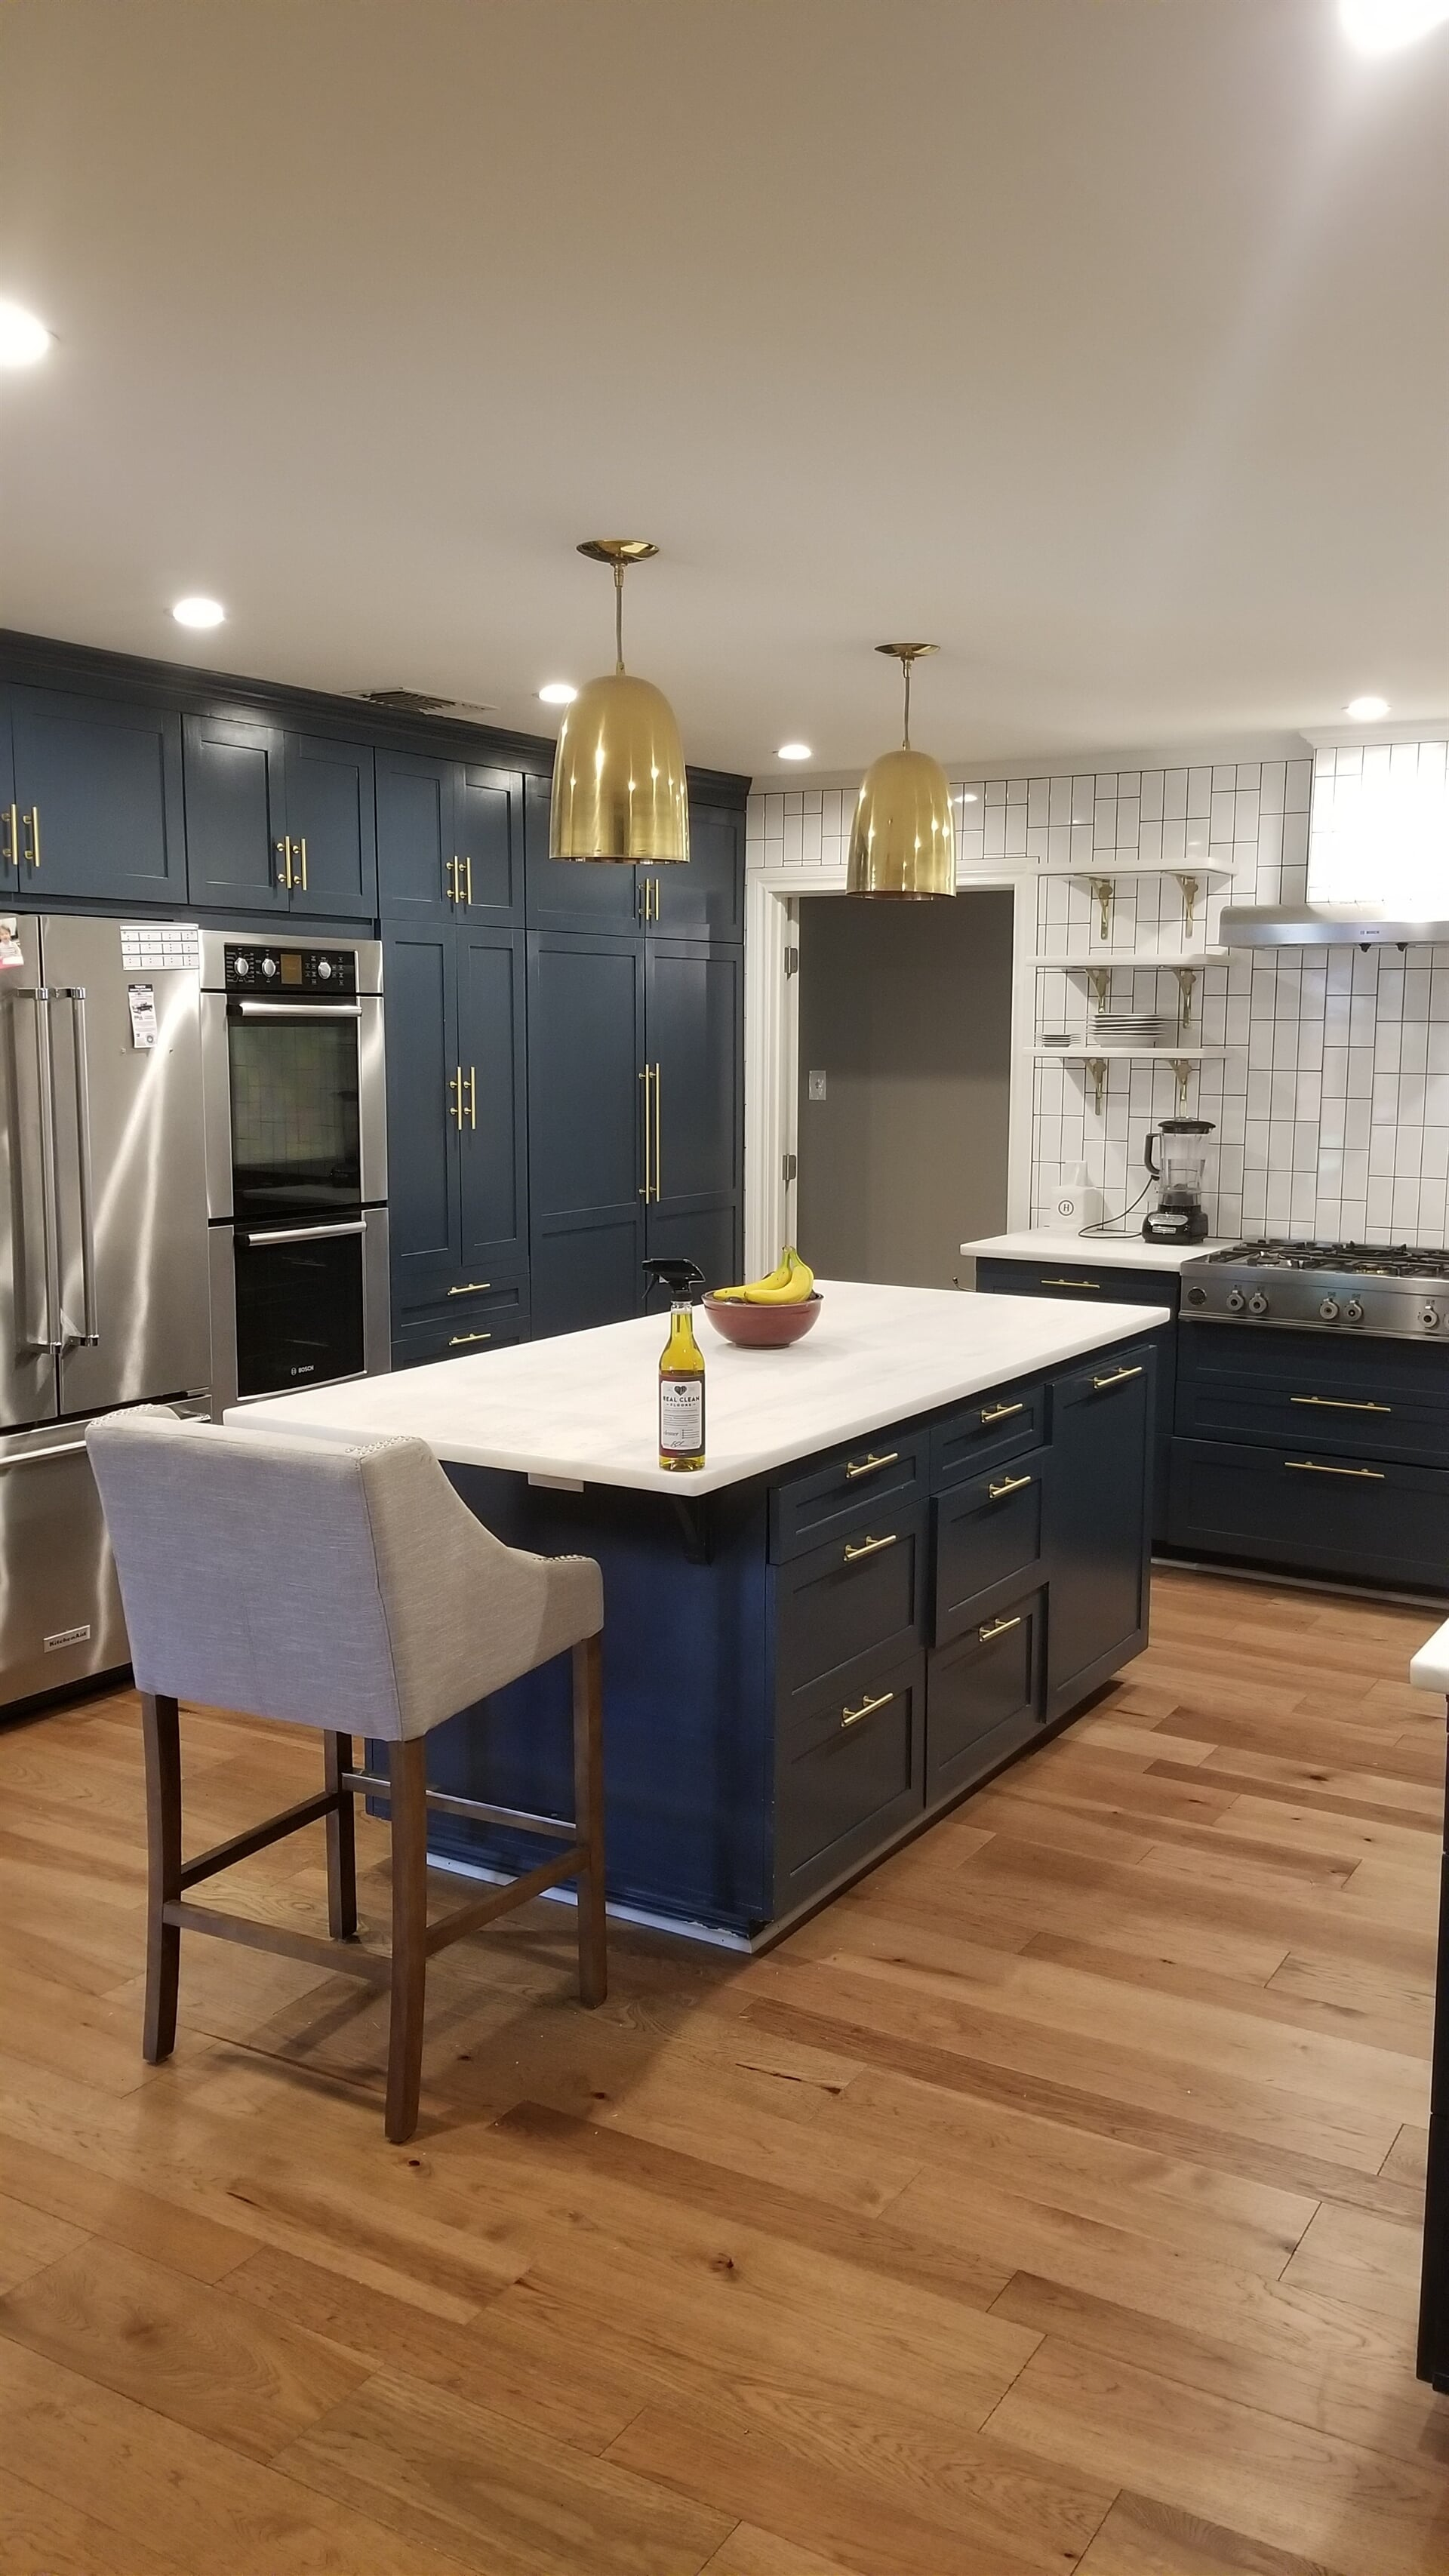 Modern kitchen with beautiful blue cabinetry in Whitehouse, TX